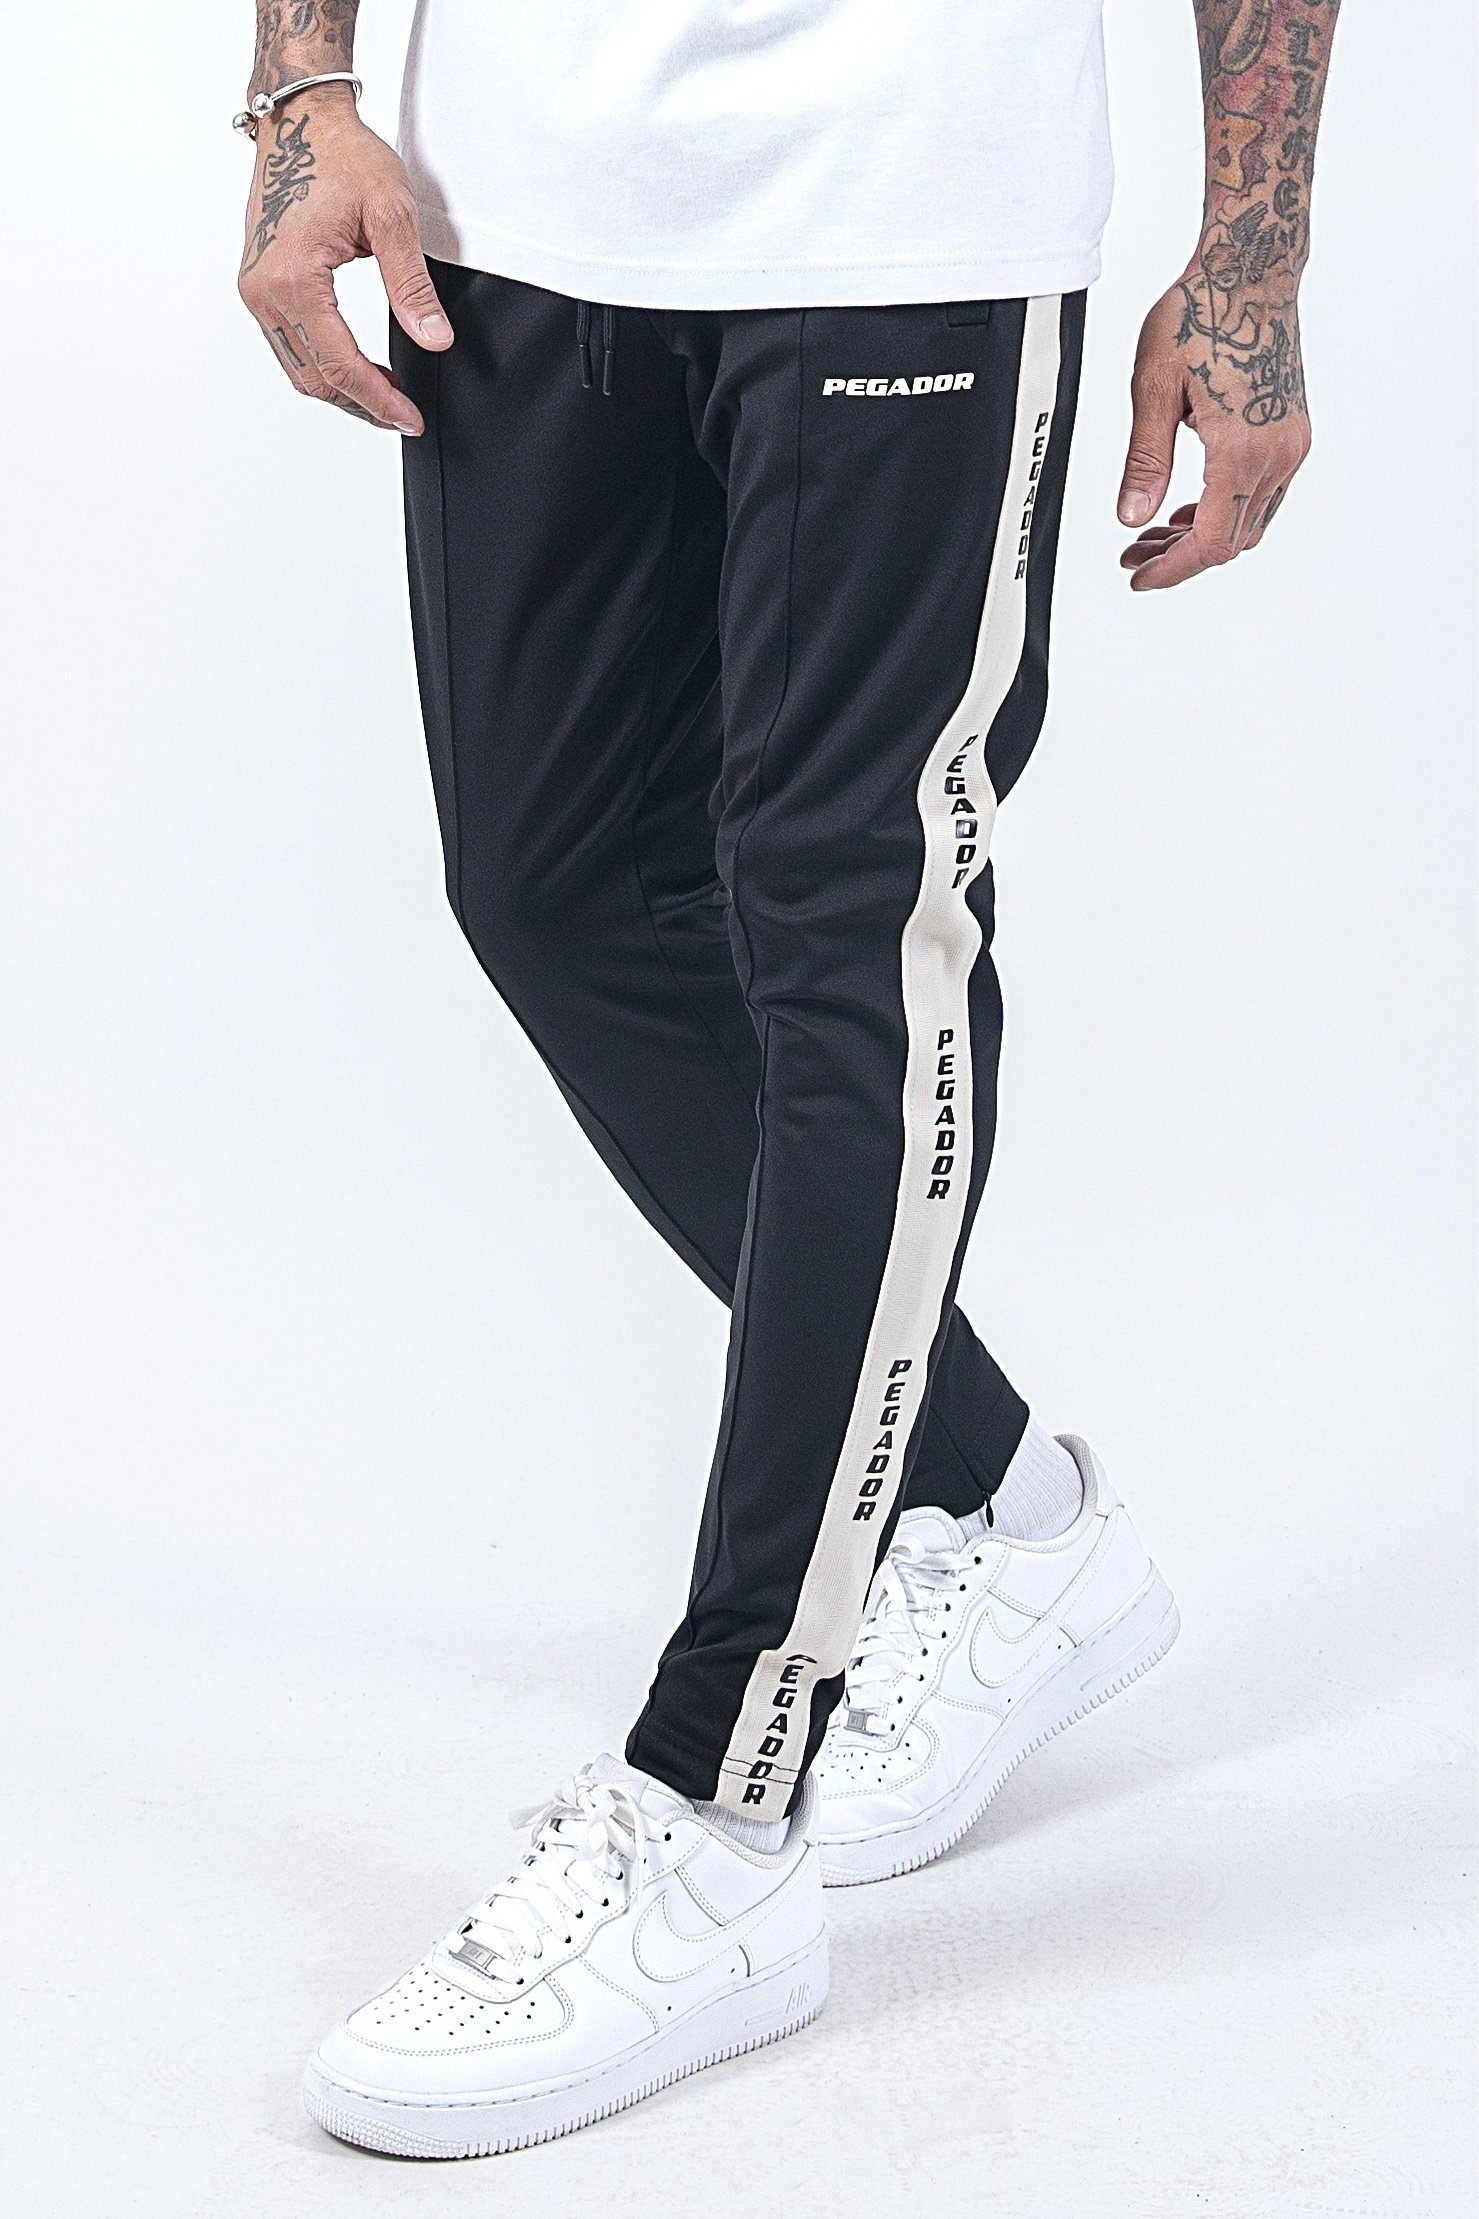 Cabal Sweat Pants Black - PEGADOR - Dominate the Hype